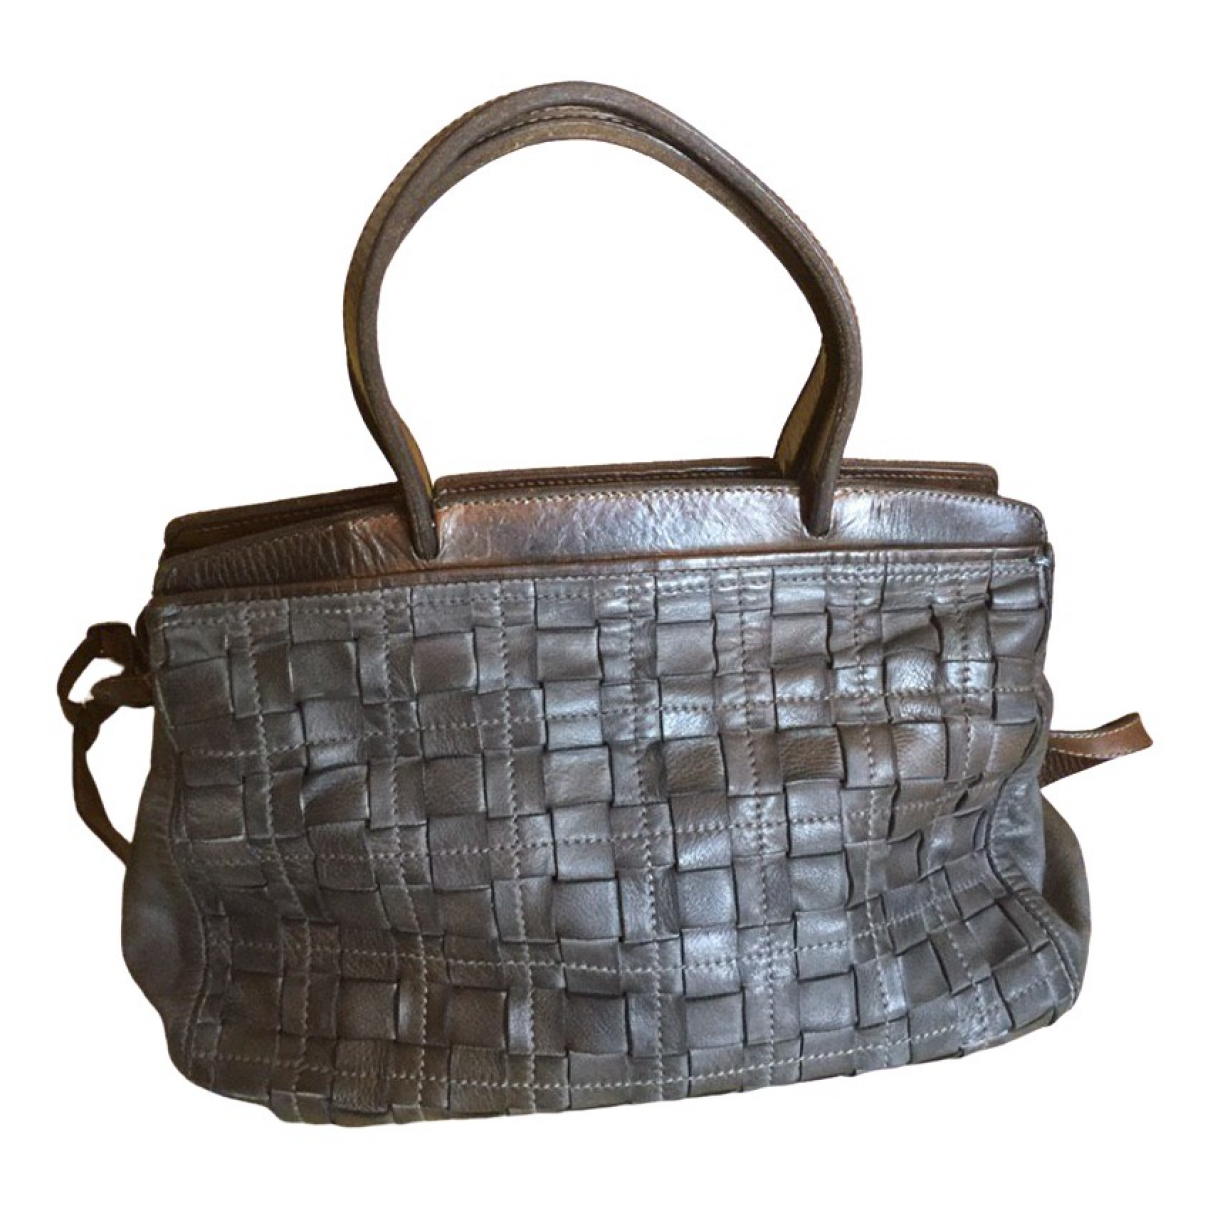 Reptile's House \N Multicolour Leather handbag for Women \N